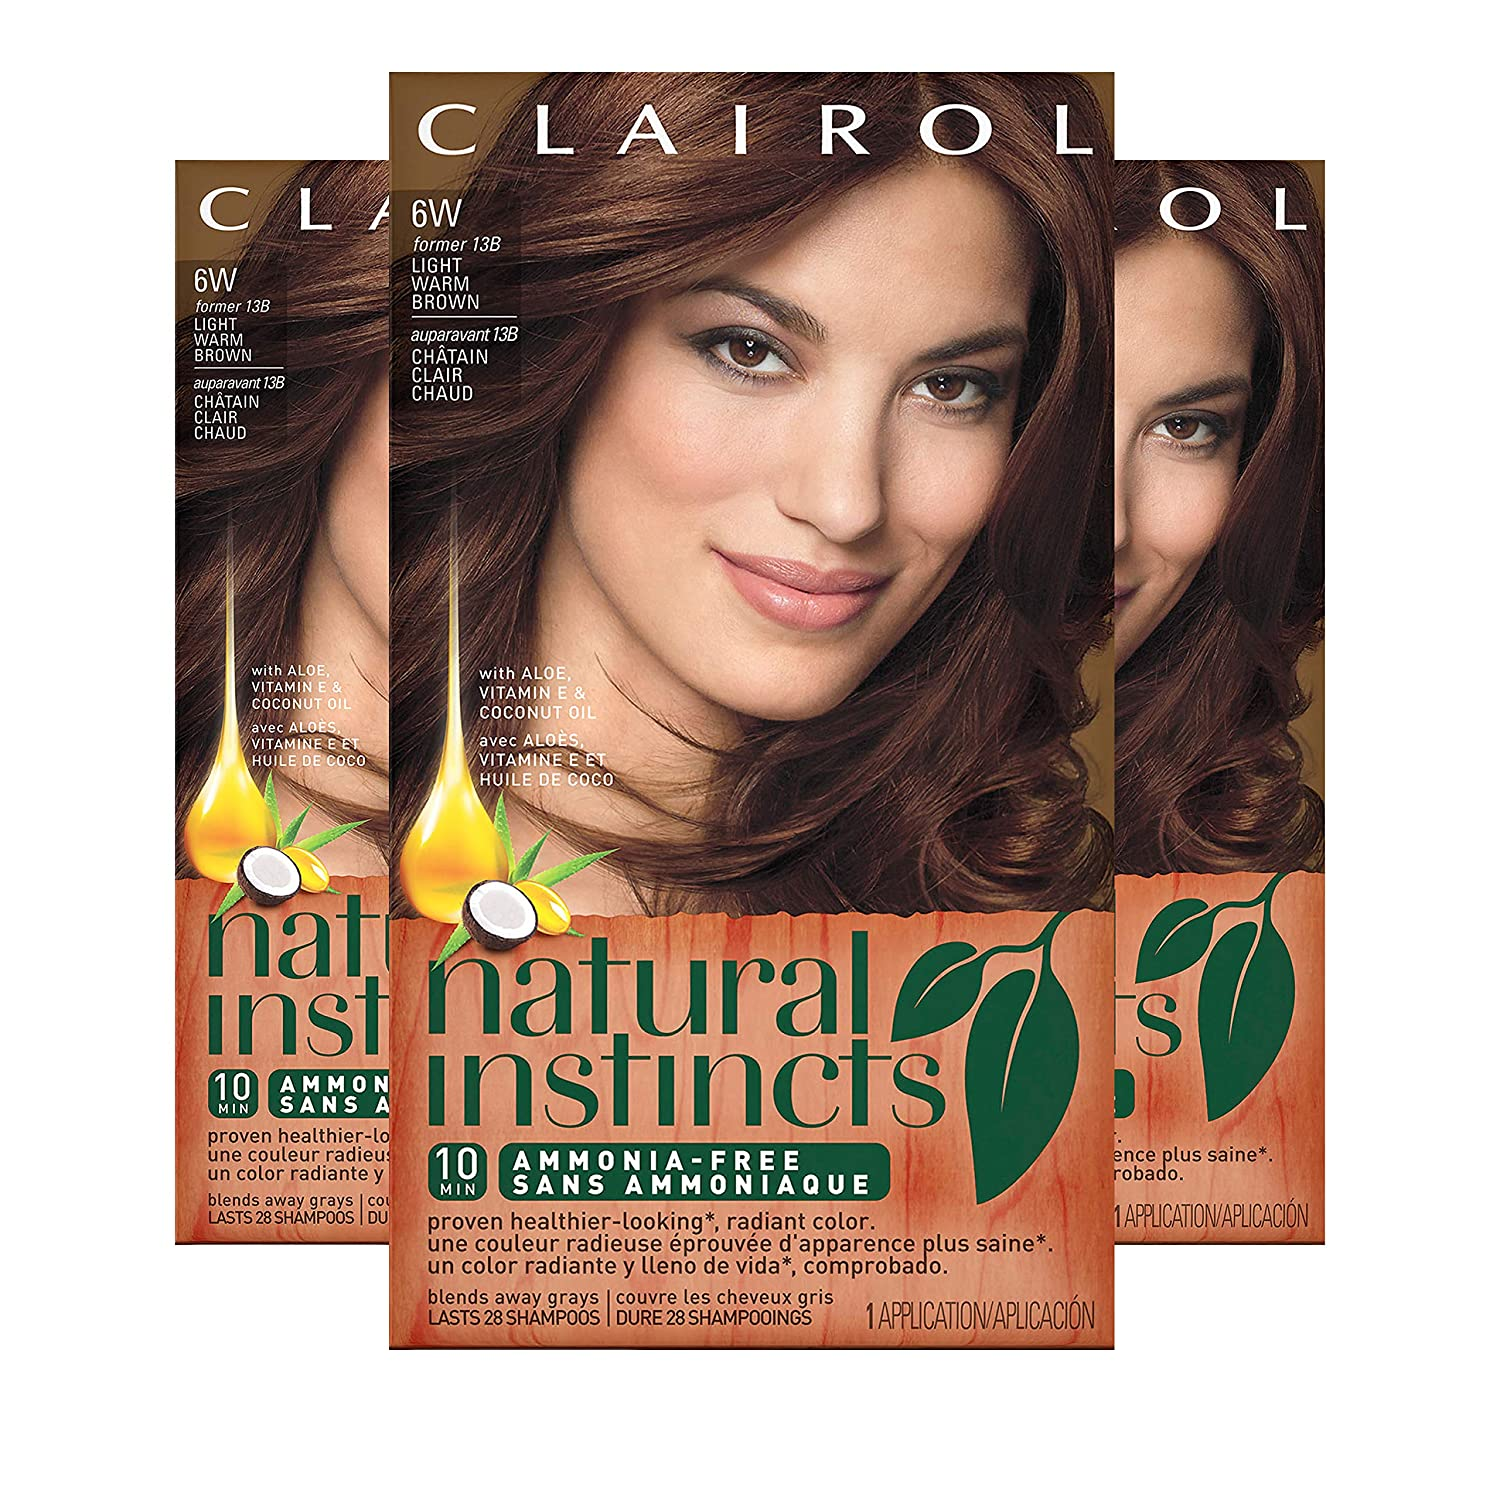 Clairol Natural Instincts Hair Color, Shade 6w/13b Spiced Cider Light Warm Brown, 3 Count